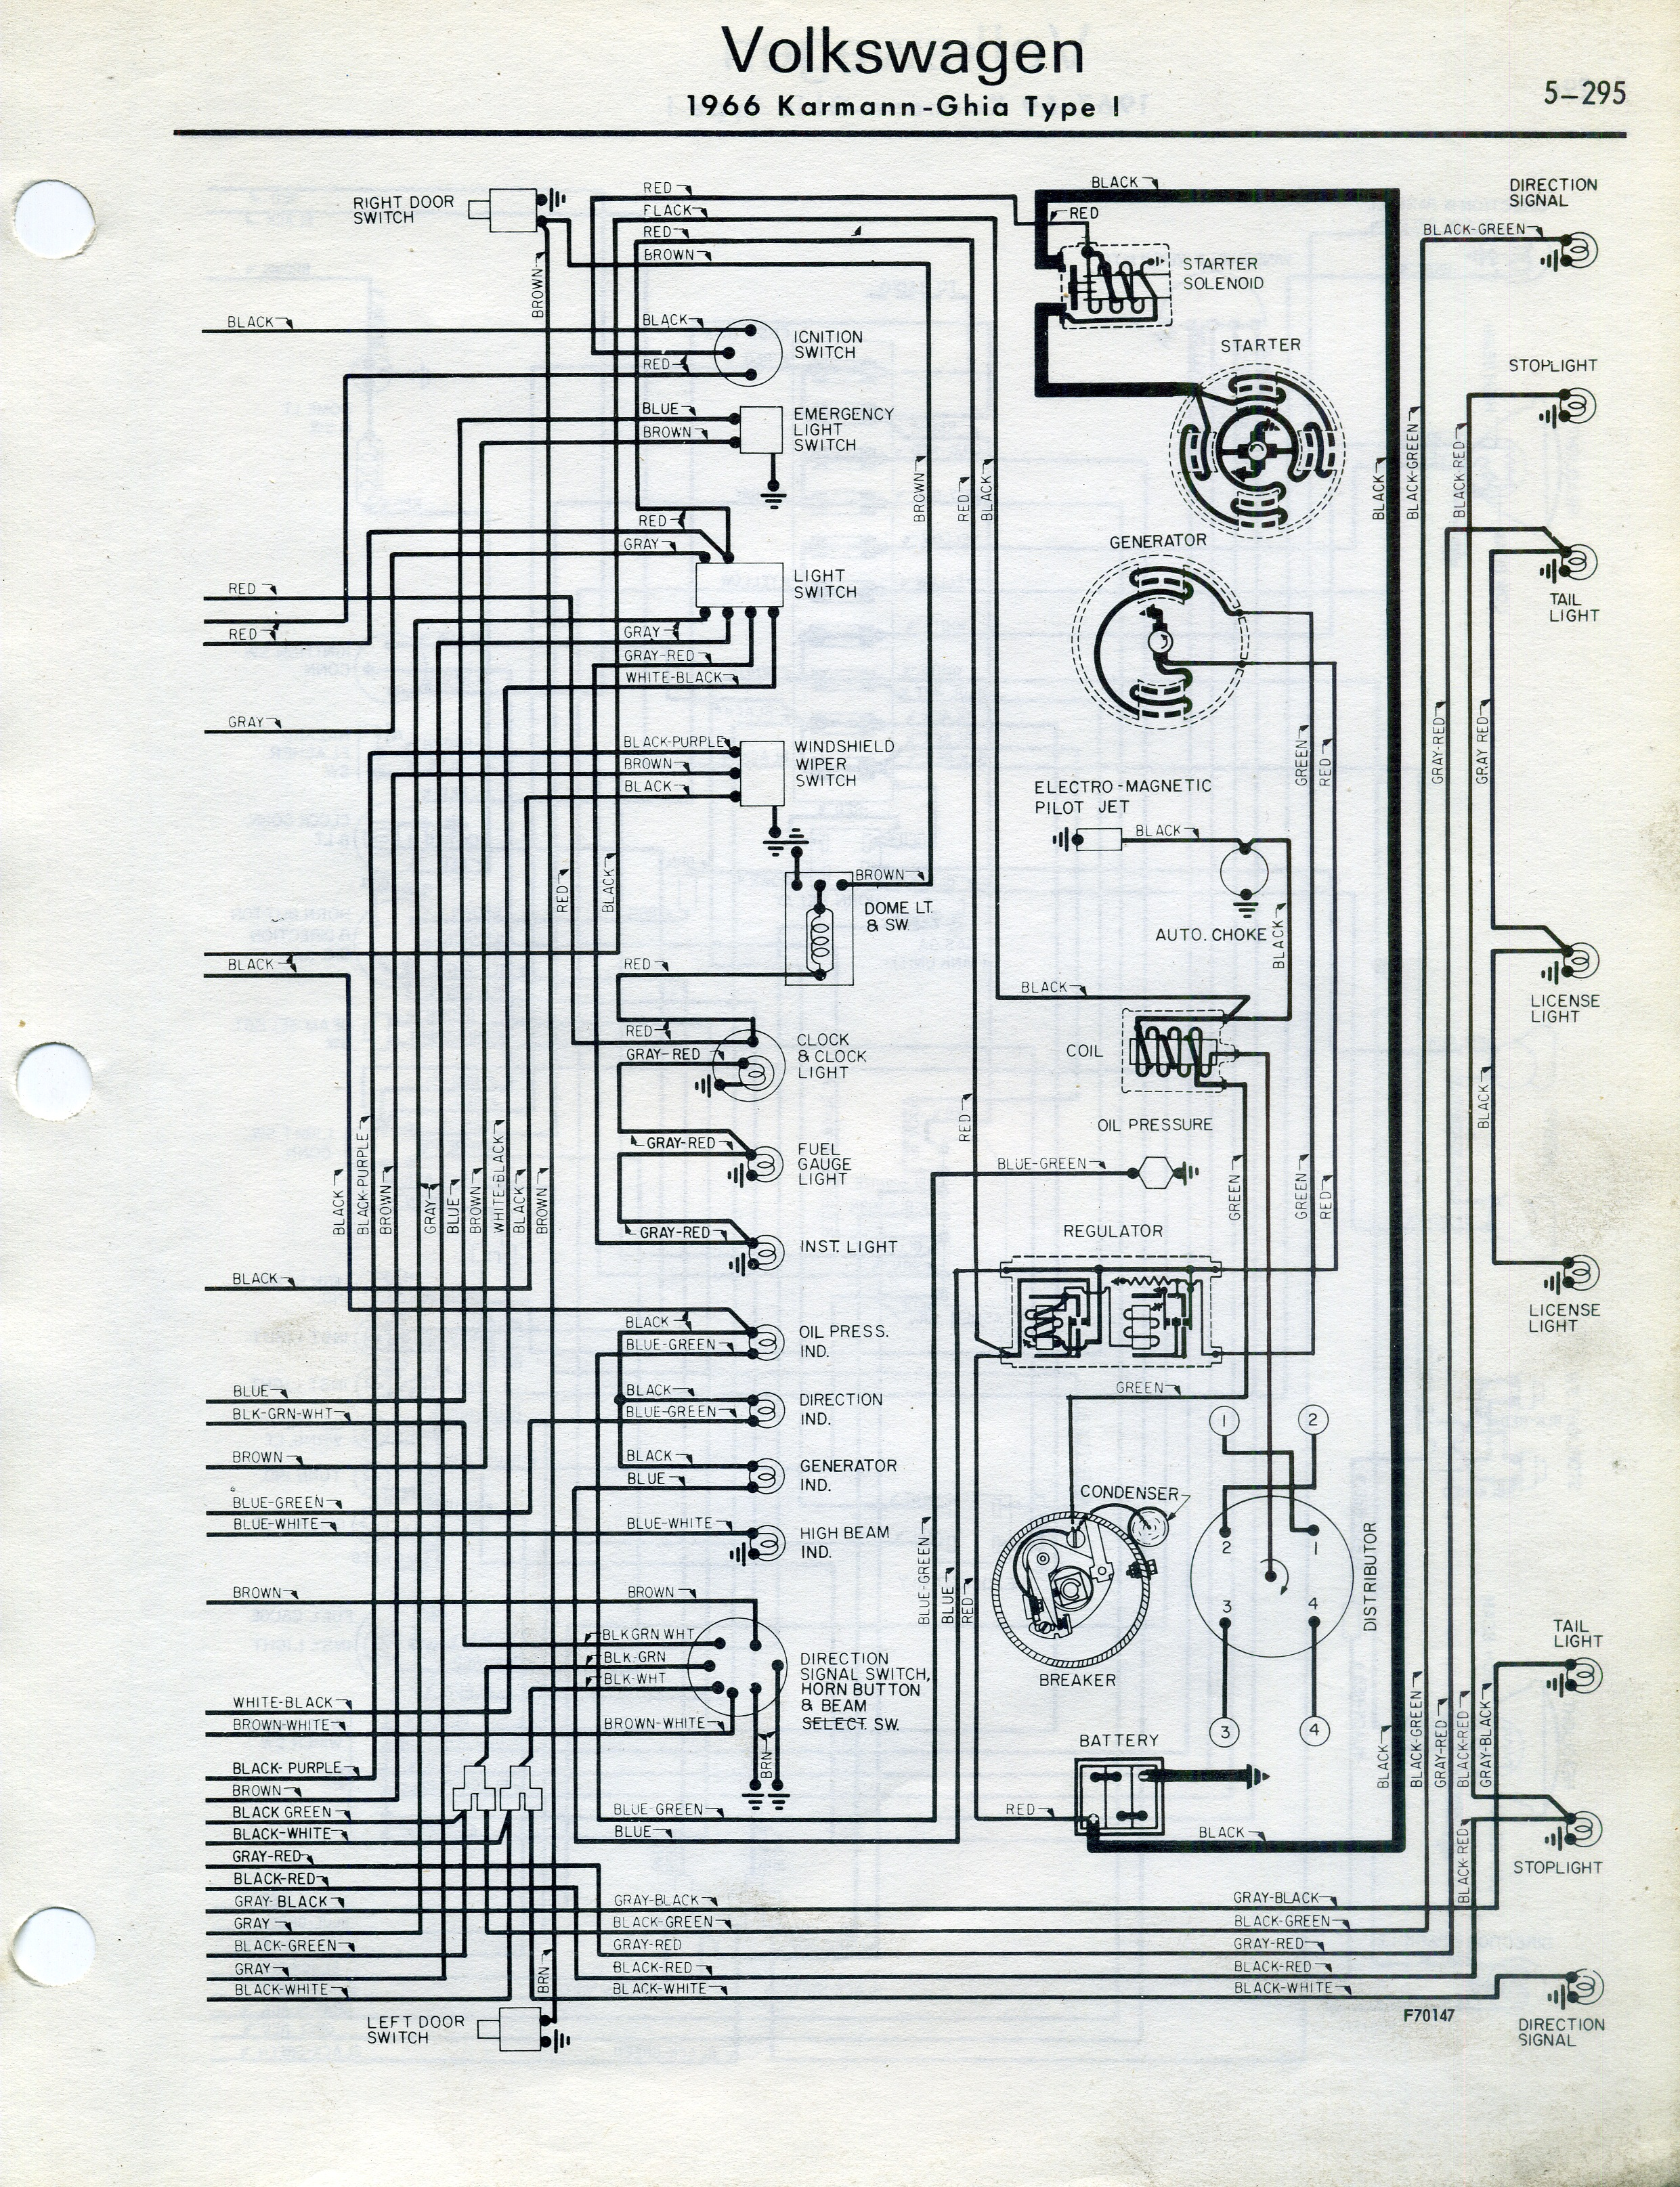 1964 karmann ghia wiring diagram